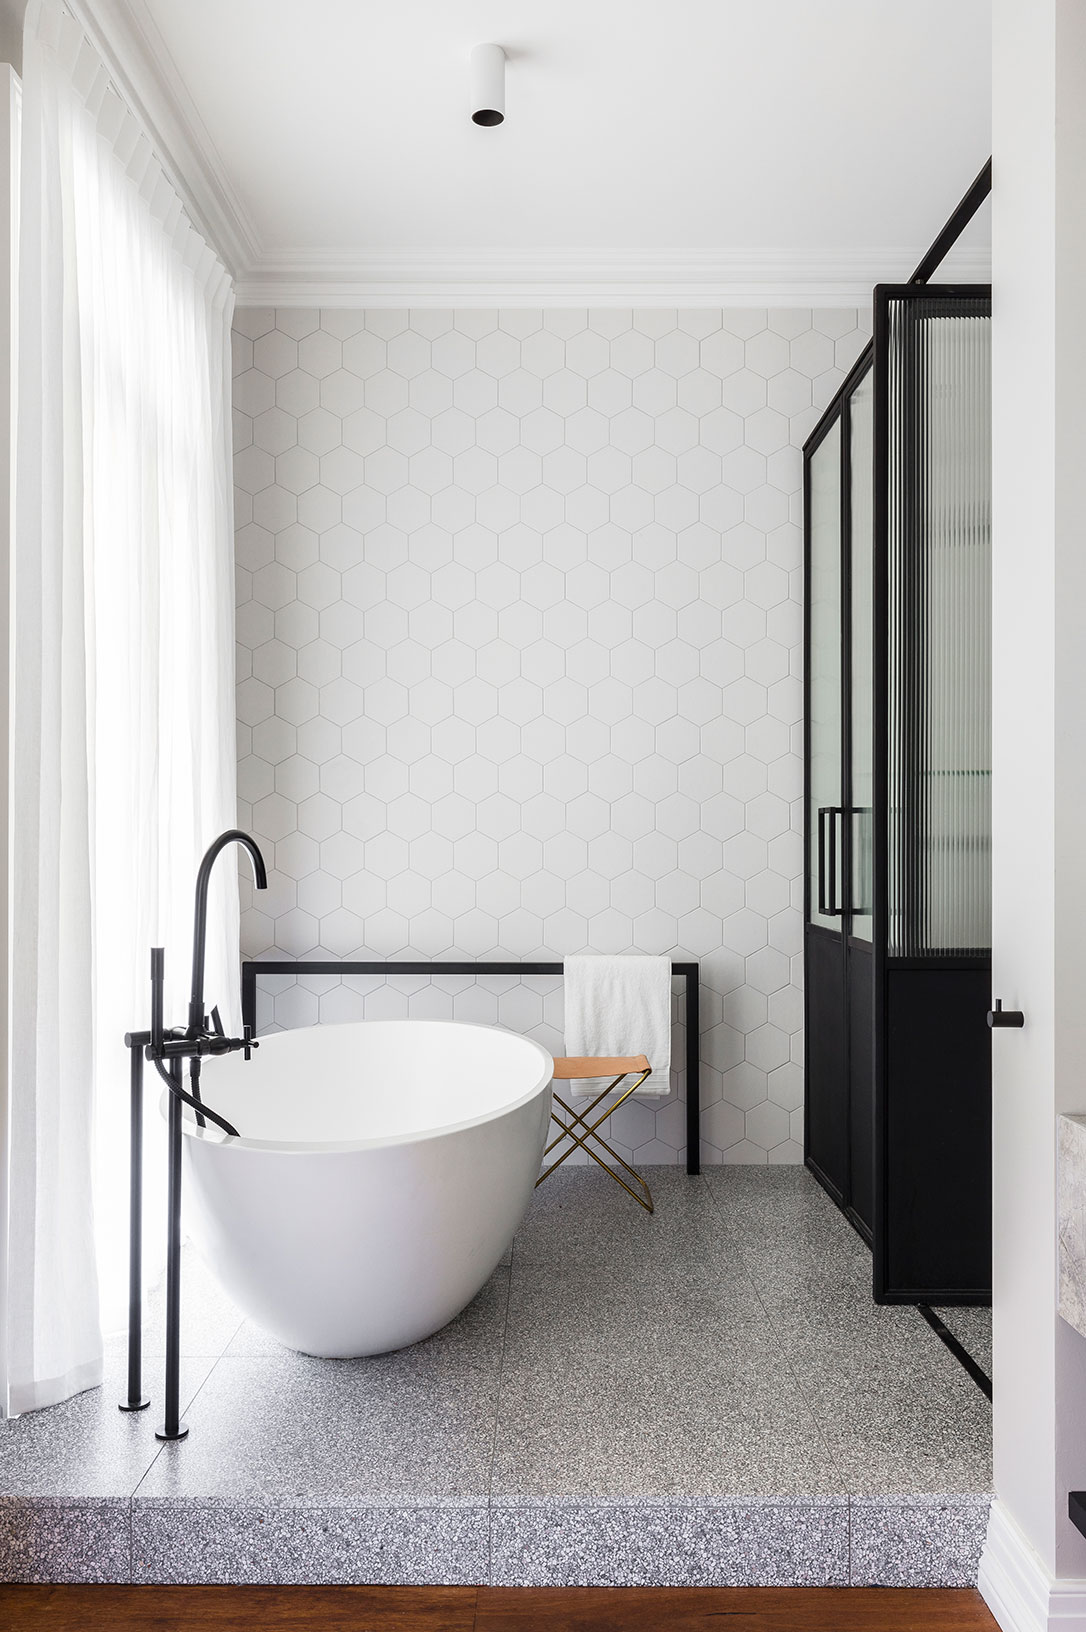 Barcom Terrace by Arent & Pyke-The Local Project-Australian Architecture & Design-Image 9